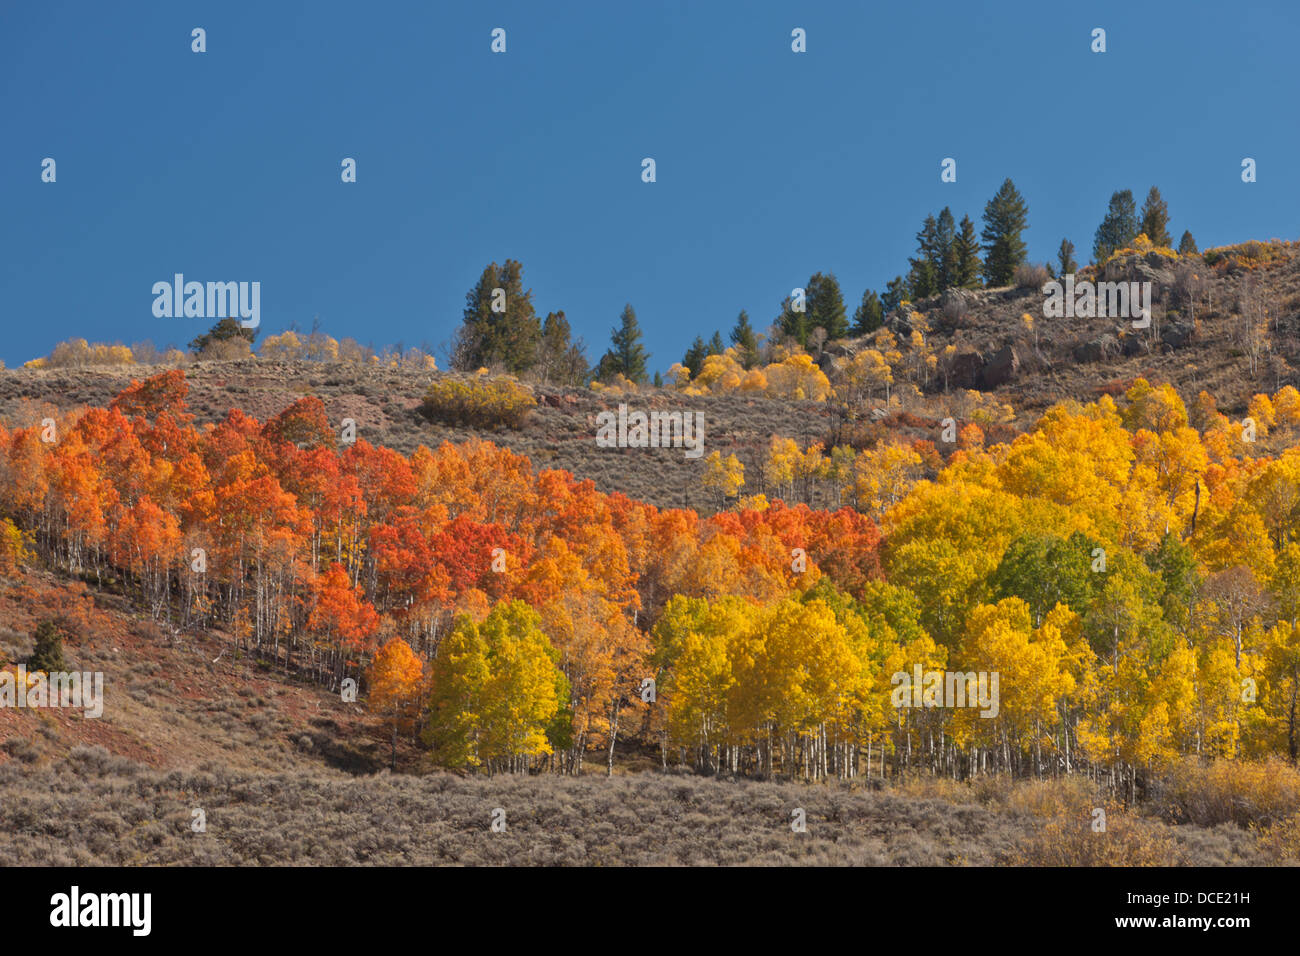 USA, Colorado. A brightly colored aspen (Populus tremuloides) grove in its peak autumn foliage - Stock Image